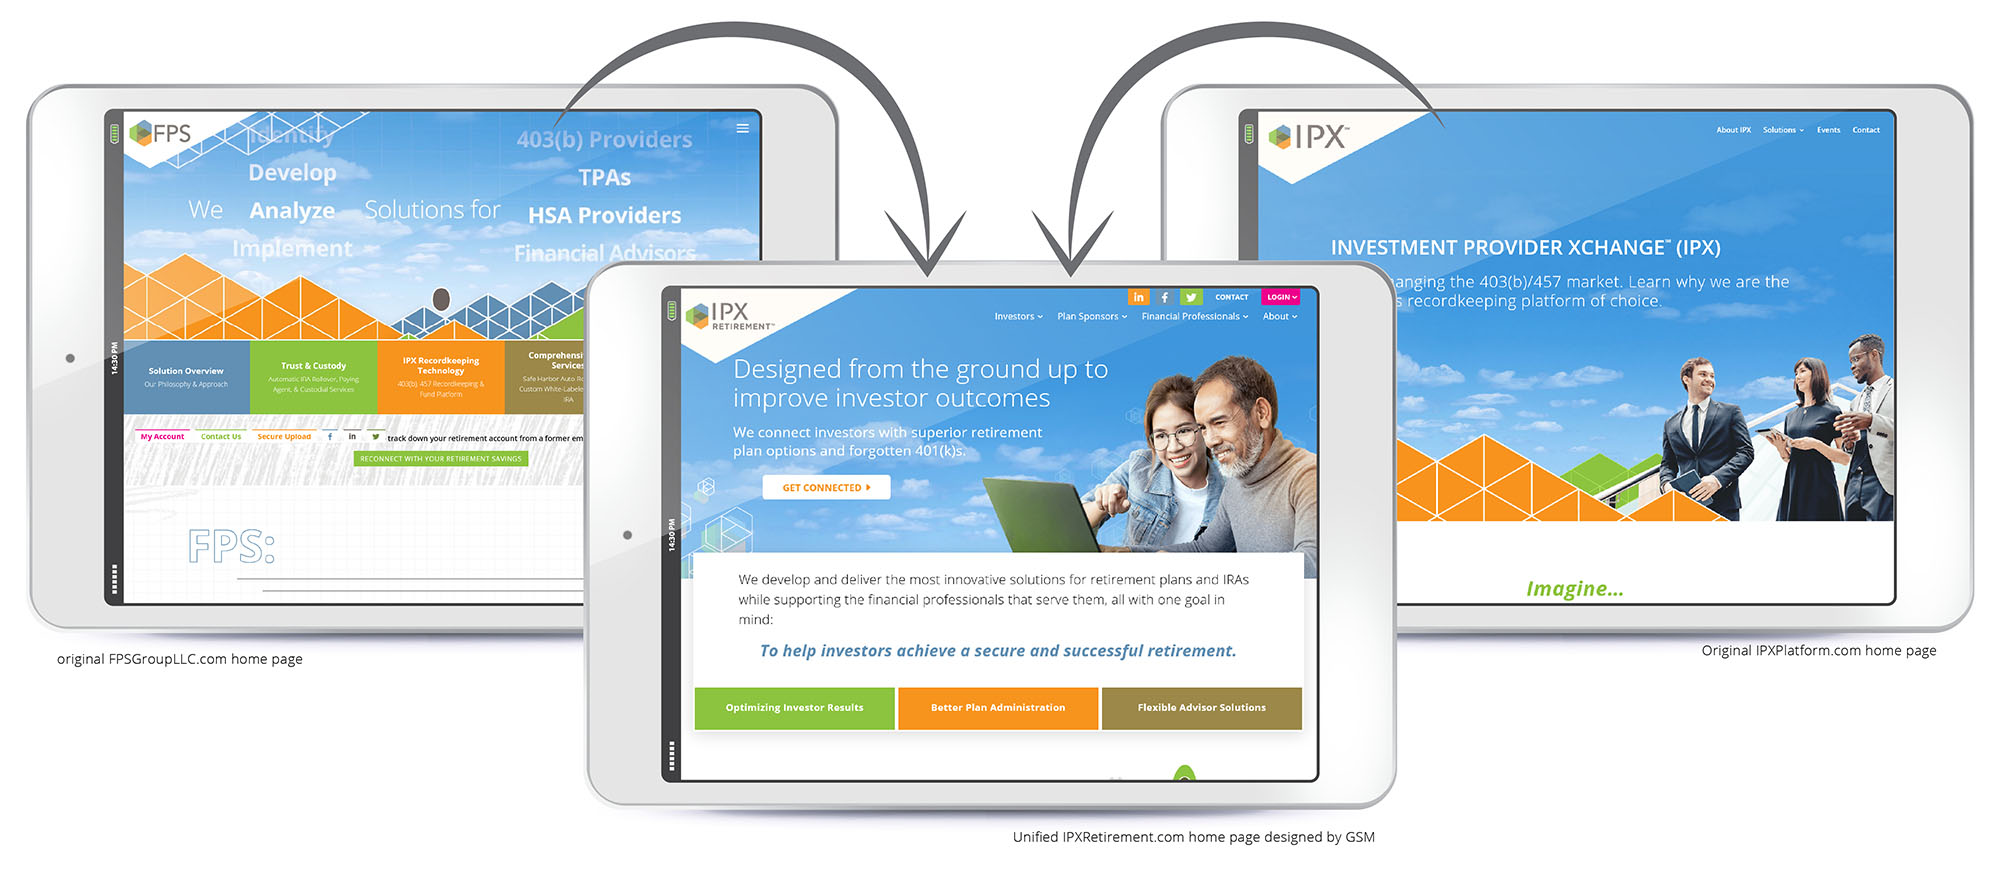 Before-and-after image illustrating the former FPS Group and IPX Platform home page designs, and how they merged together to create the IPX Retirement home page design